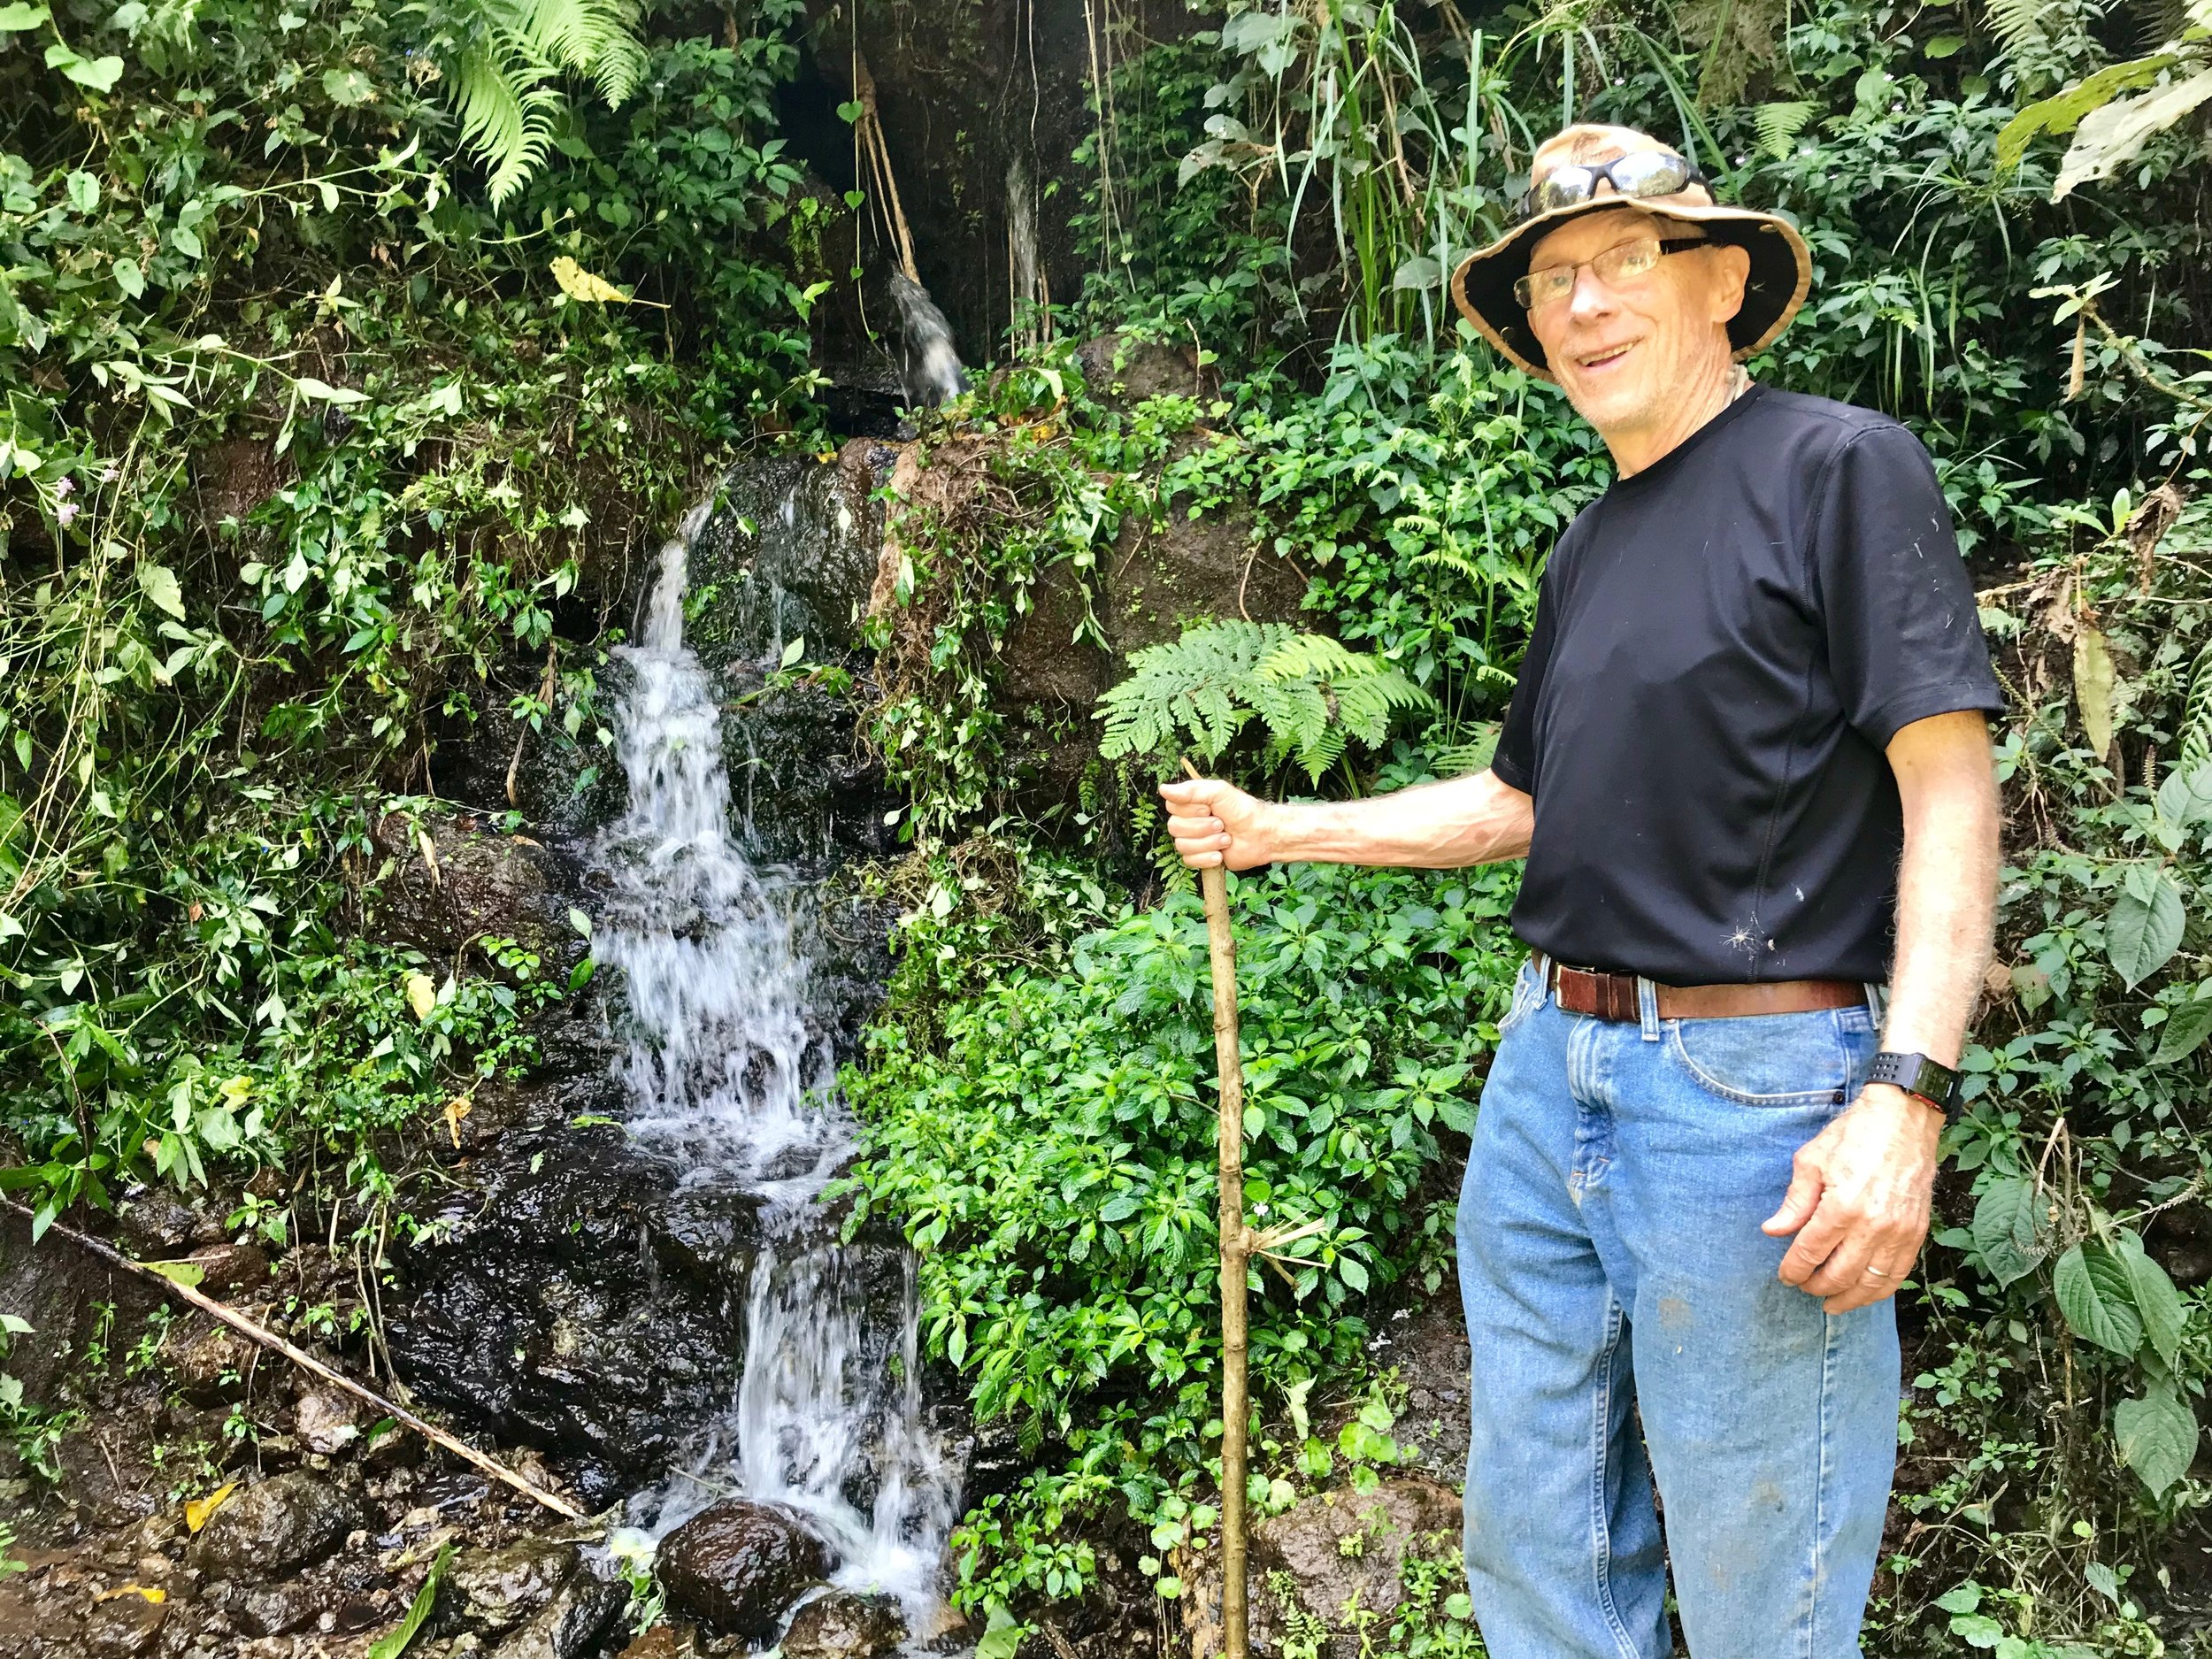 Don Koppes pictured in front of the Hadera spring. Construction will begin in January and it should be completed by April 2019. Water from this spring will serve the poorest section of Homacho.